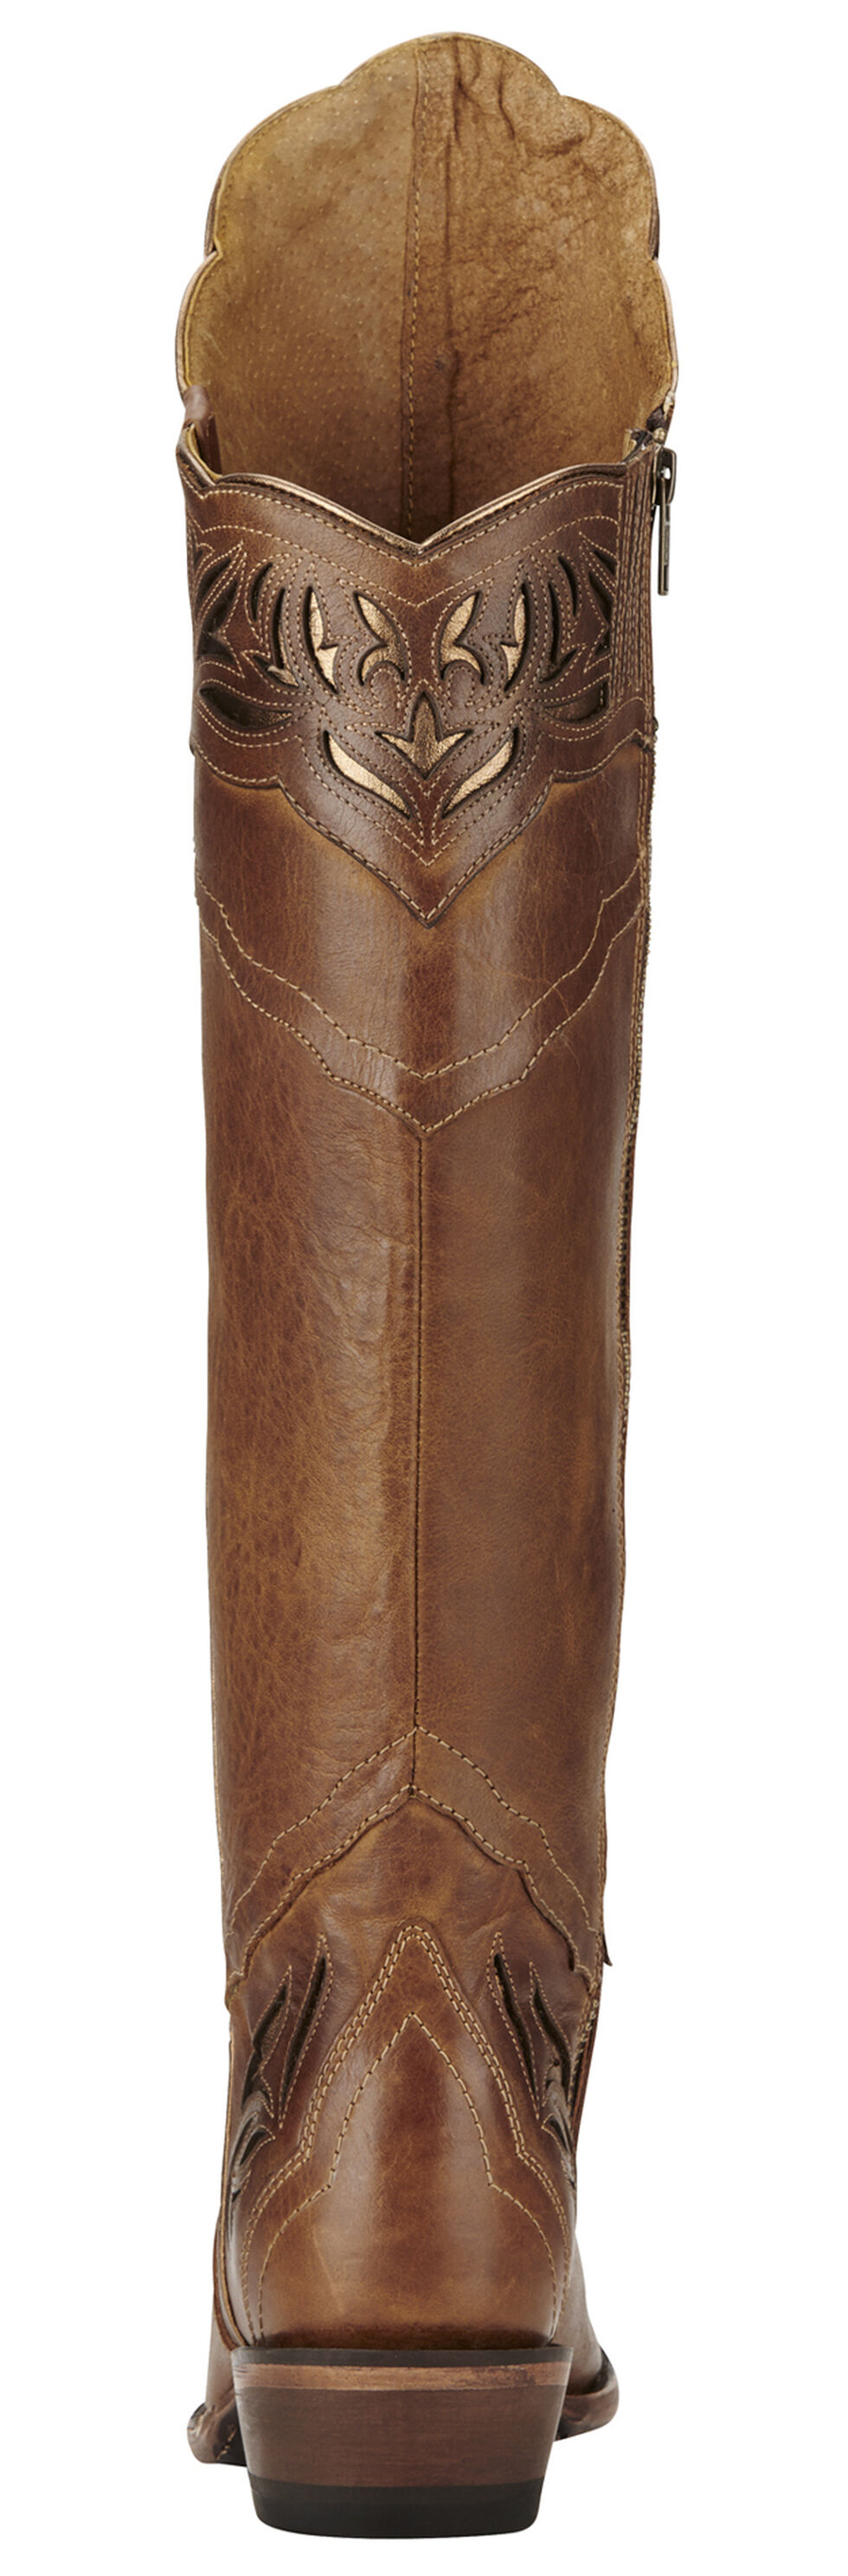 Ariat Chaparral Brilliant Buff Cowgirl Boots - Snip Toe, Brown, hi-res